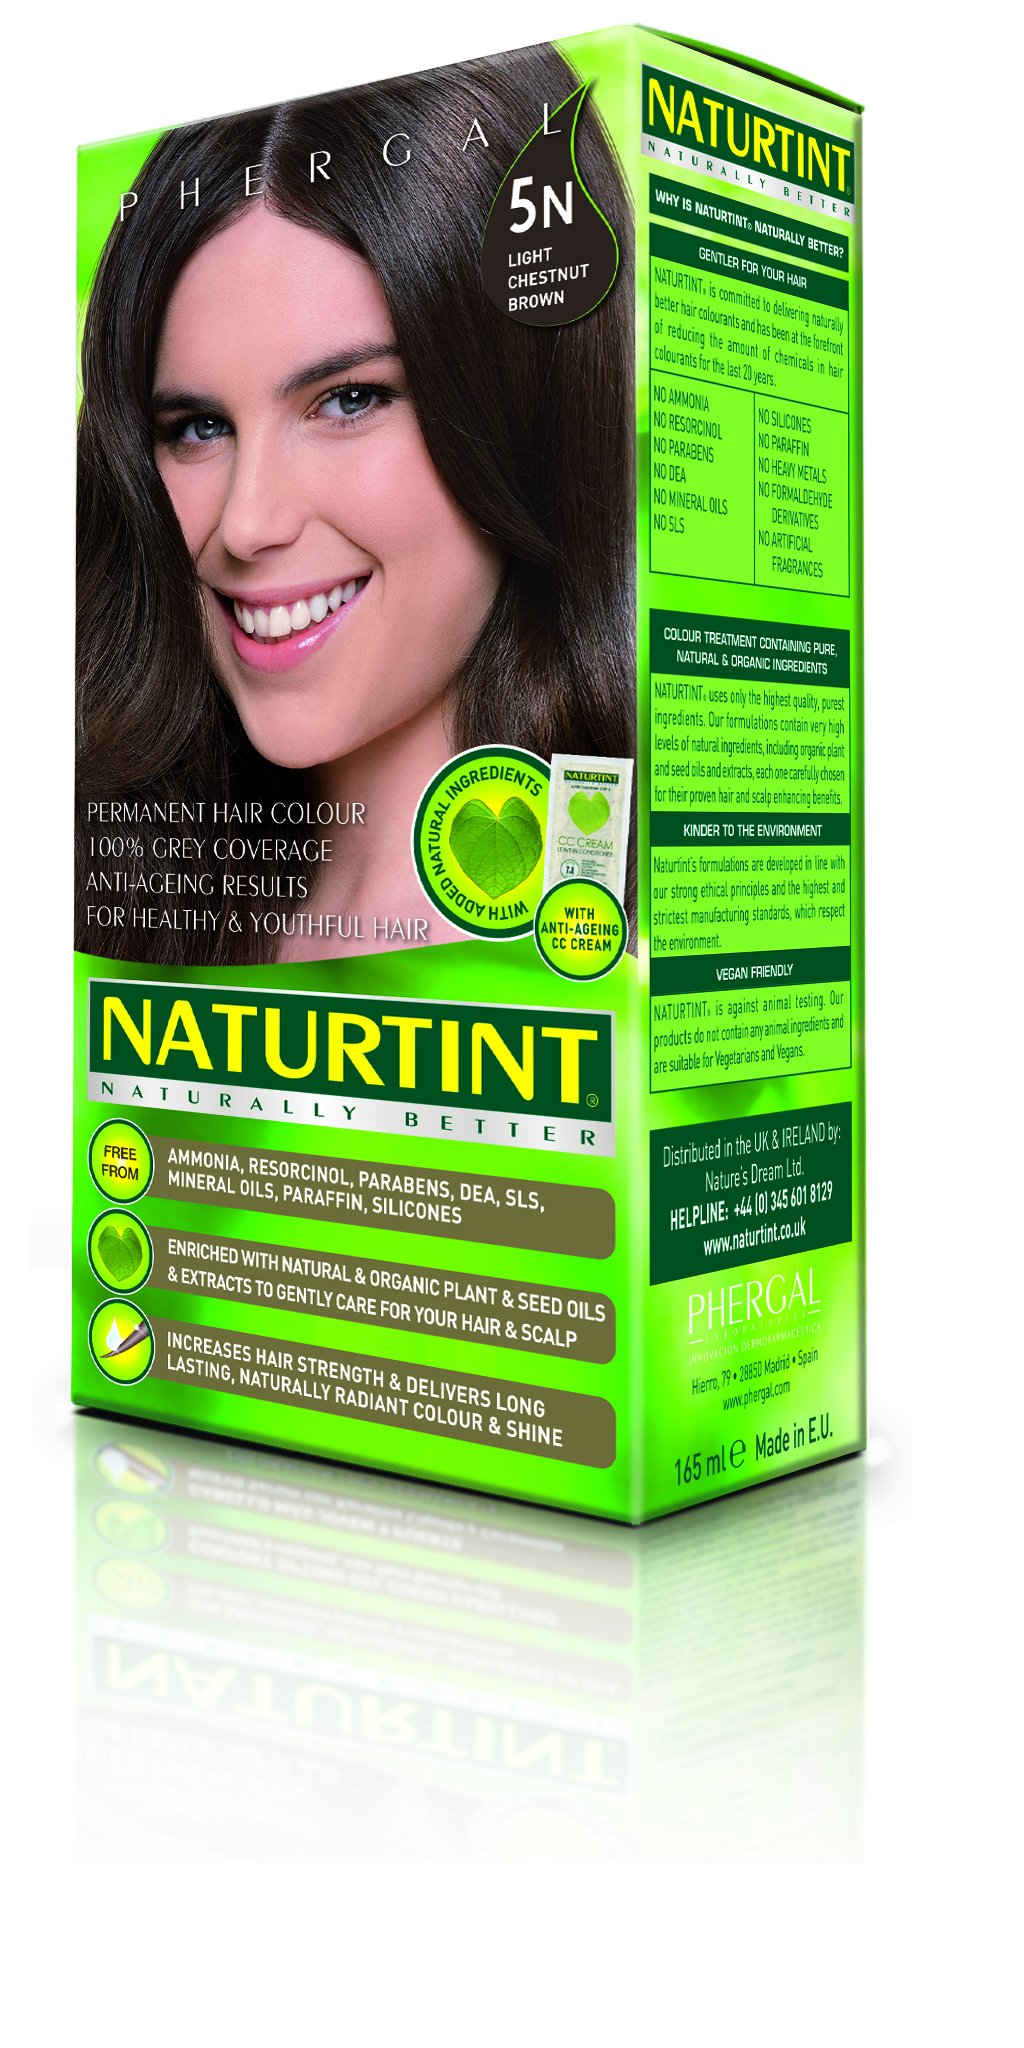 Naturtint Permanent Hair Colorant 5N Light Chestnut Brown -- 5.28 fl oz by Naturtint (Image #2)